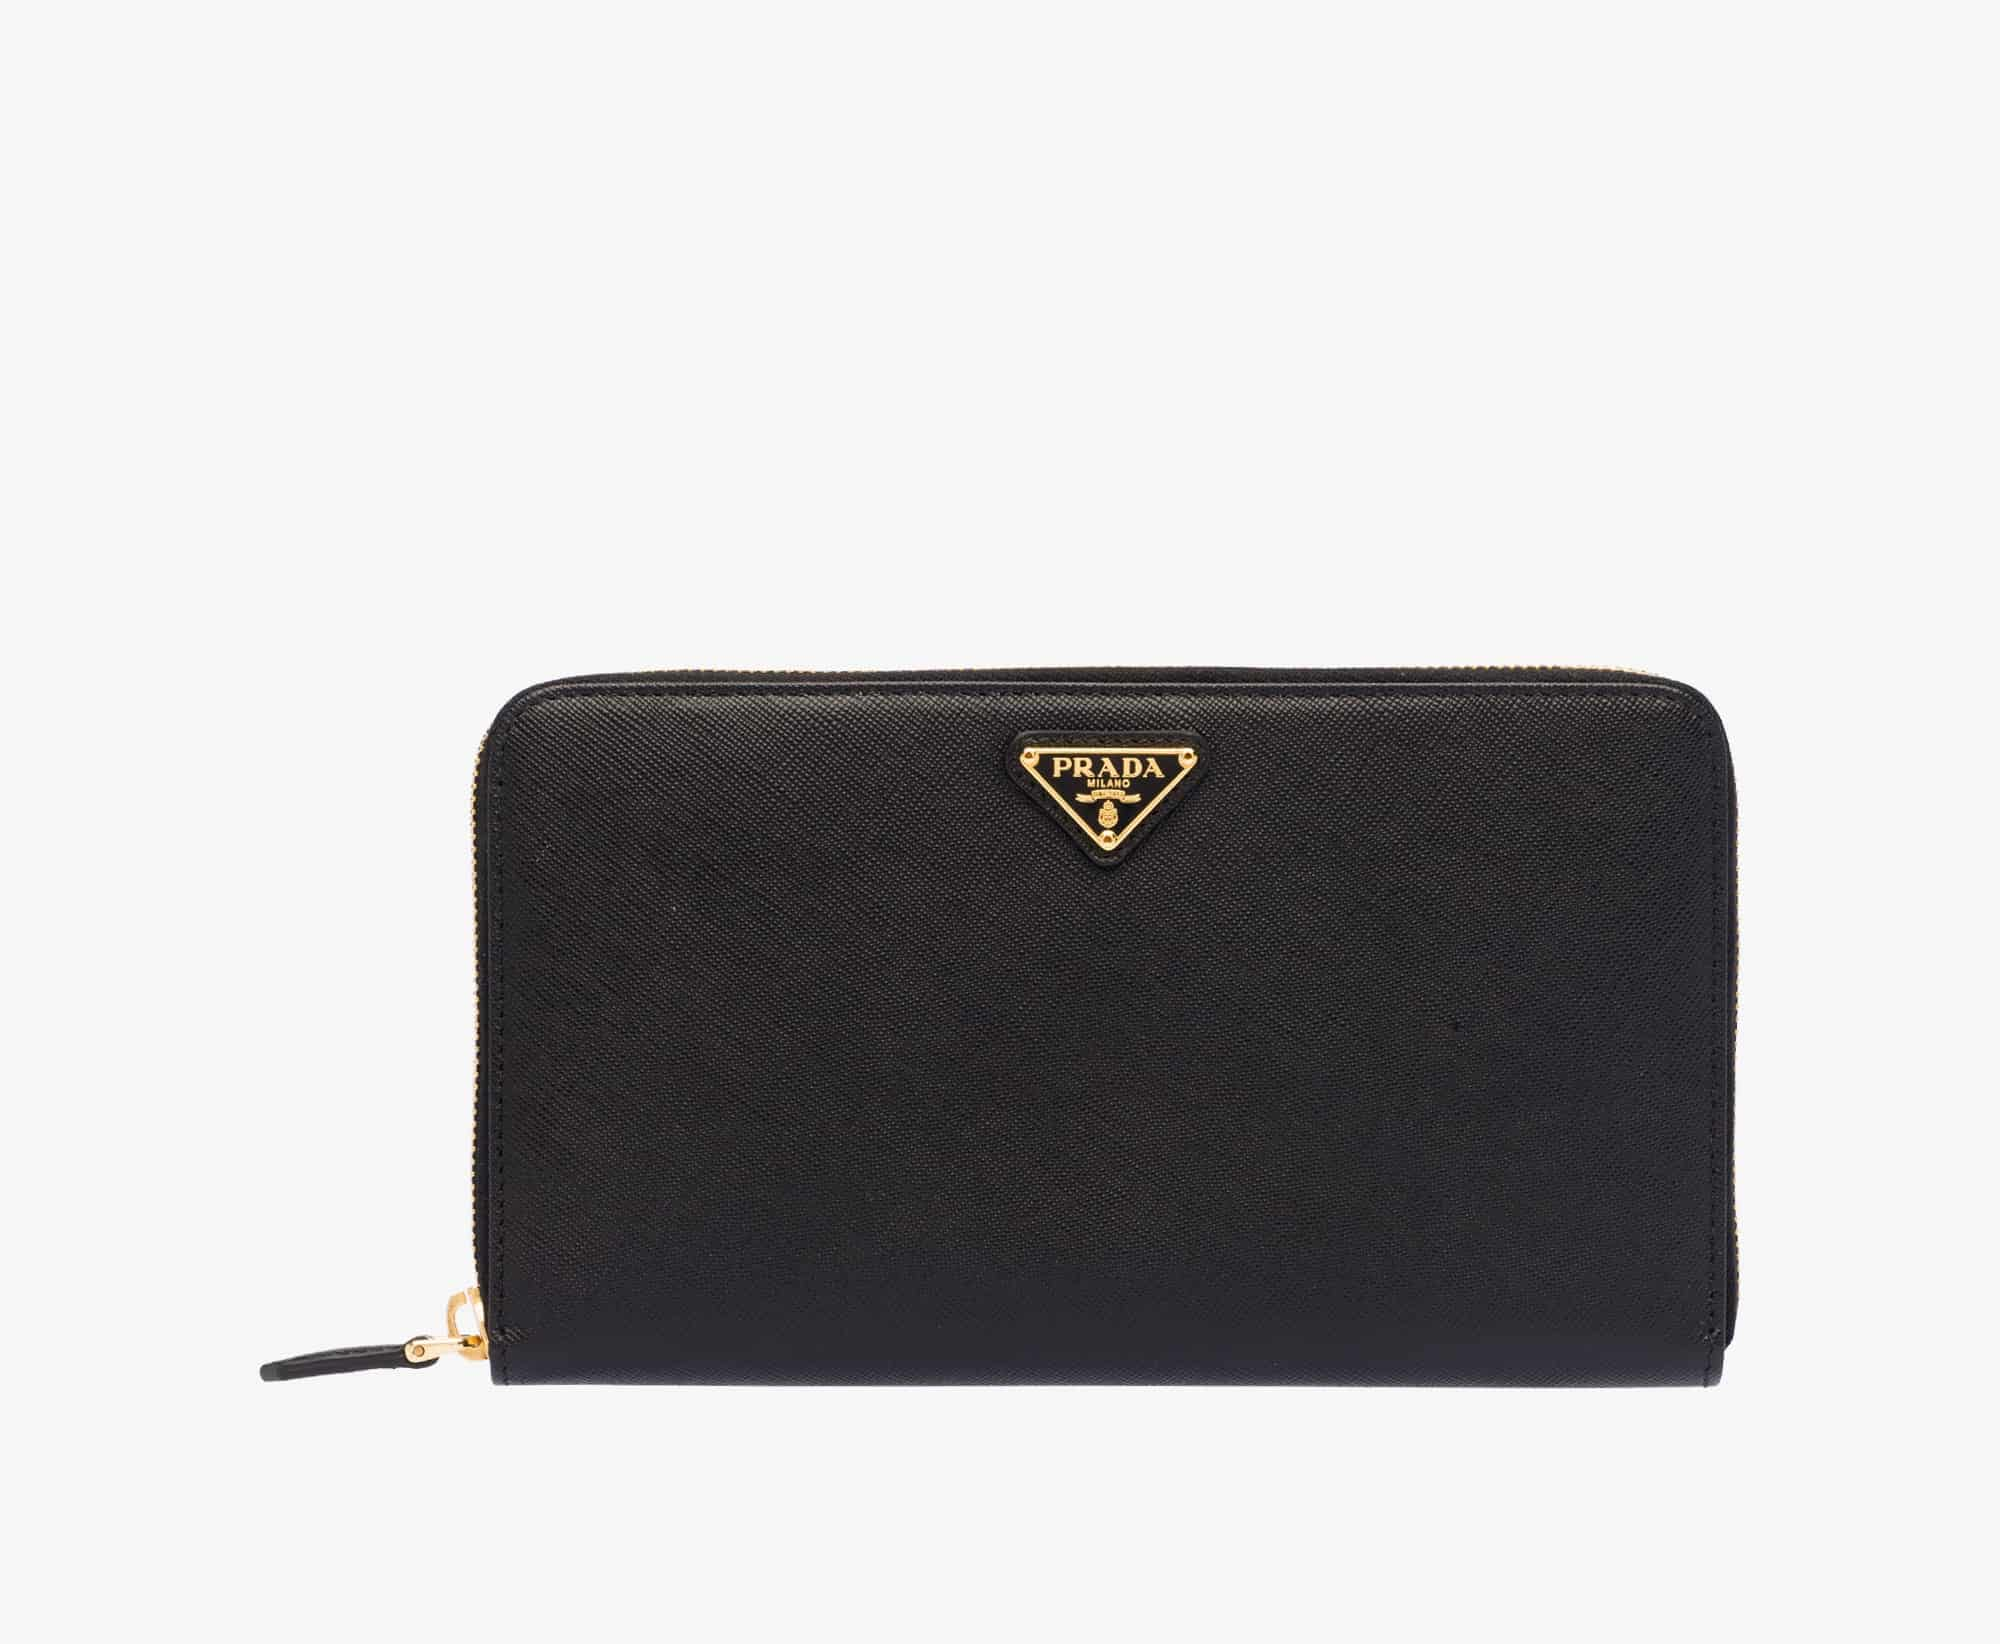 wallets prada for women latest prada